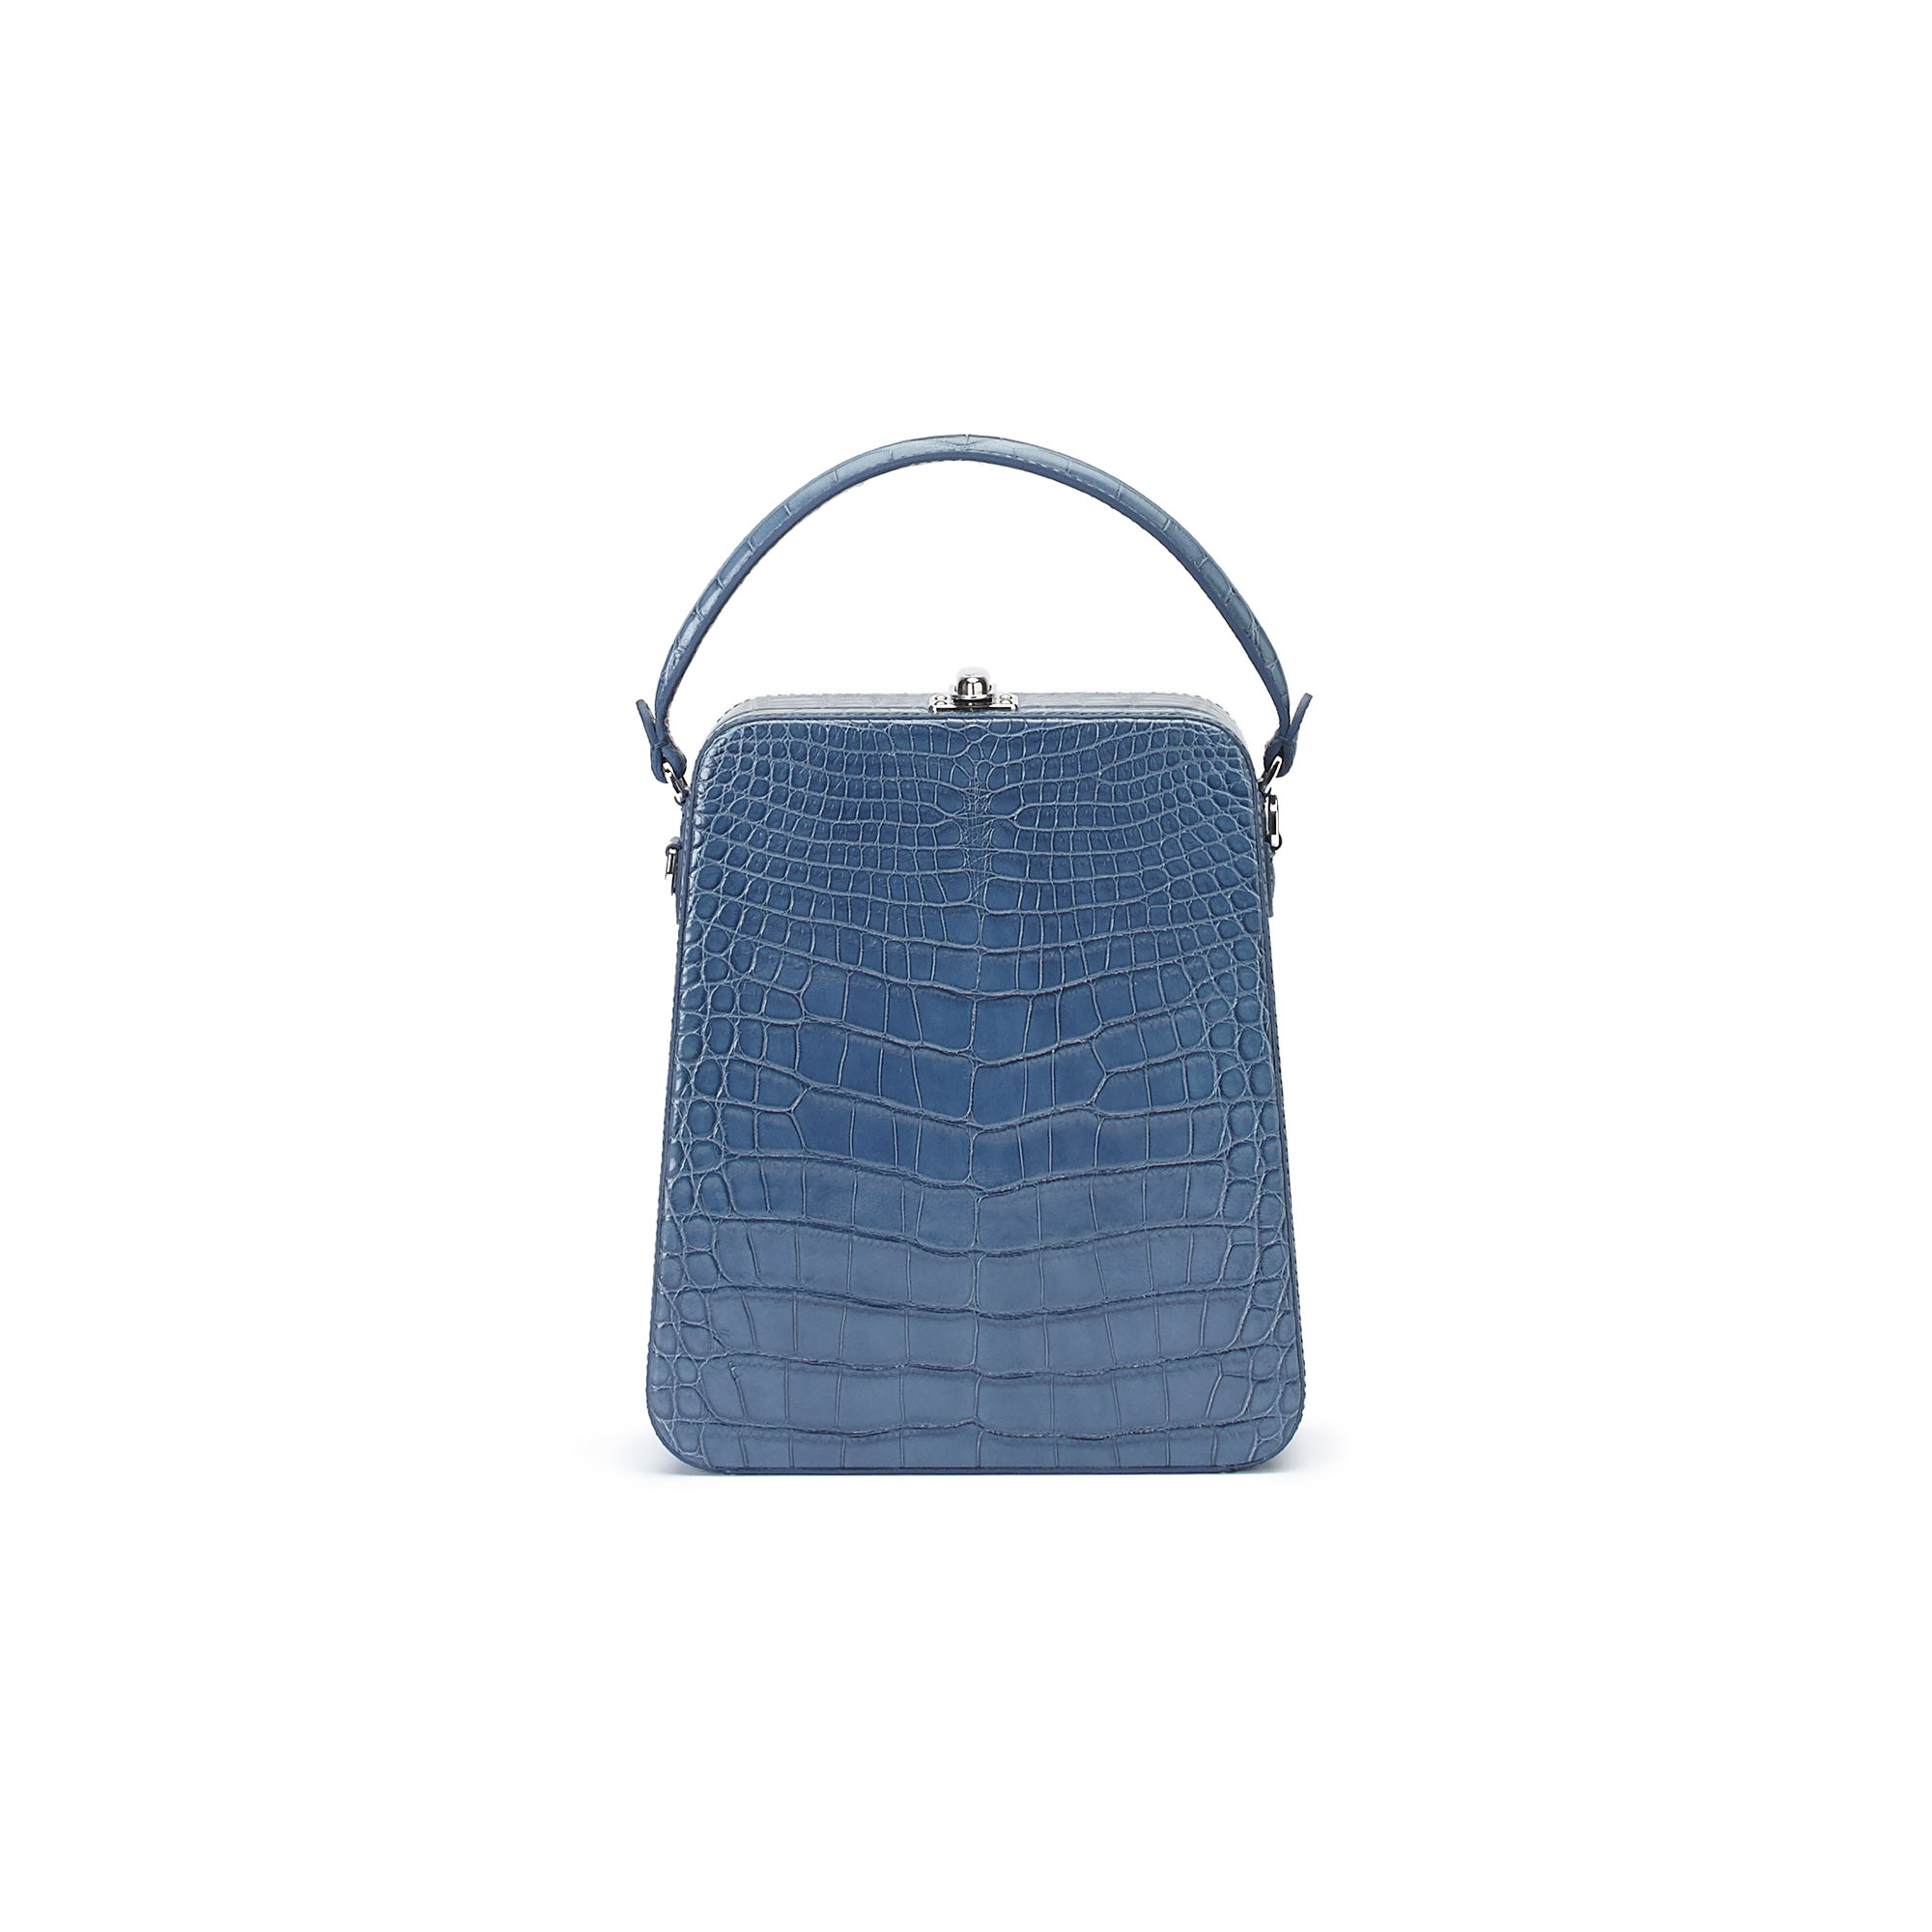 The blue alligator denim Tall Bertoncina bag by Bertoni 1949 01